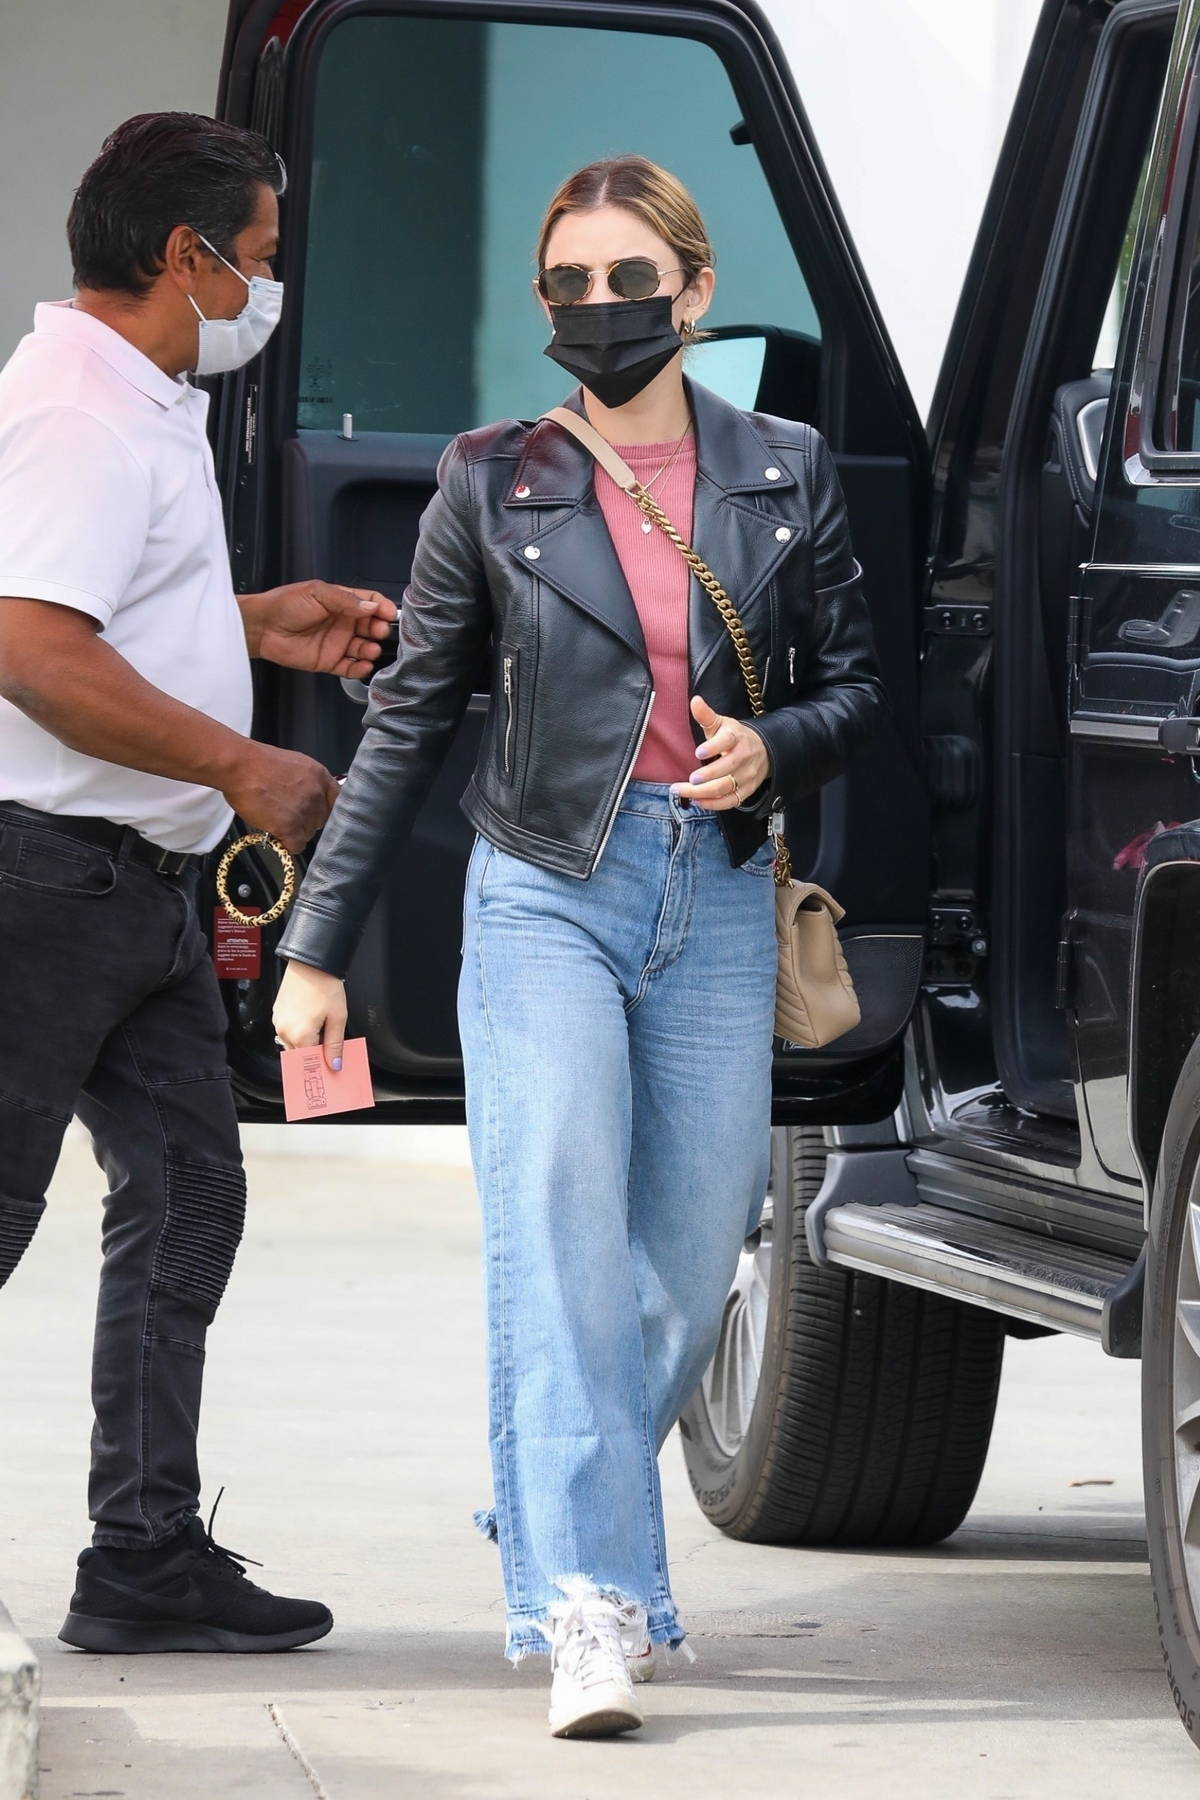 Lucy Hale rocks a leather jacket with a pink top and jeans while out shopping at a clothing store in Los Angeles